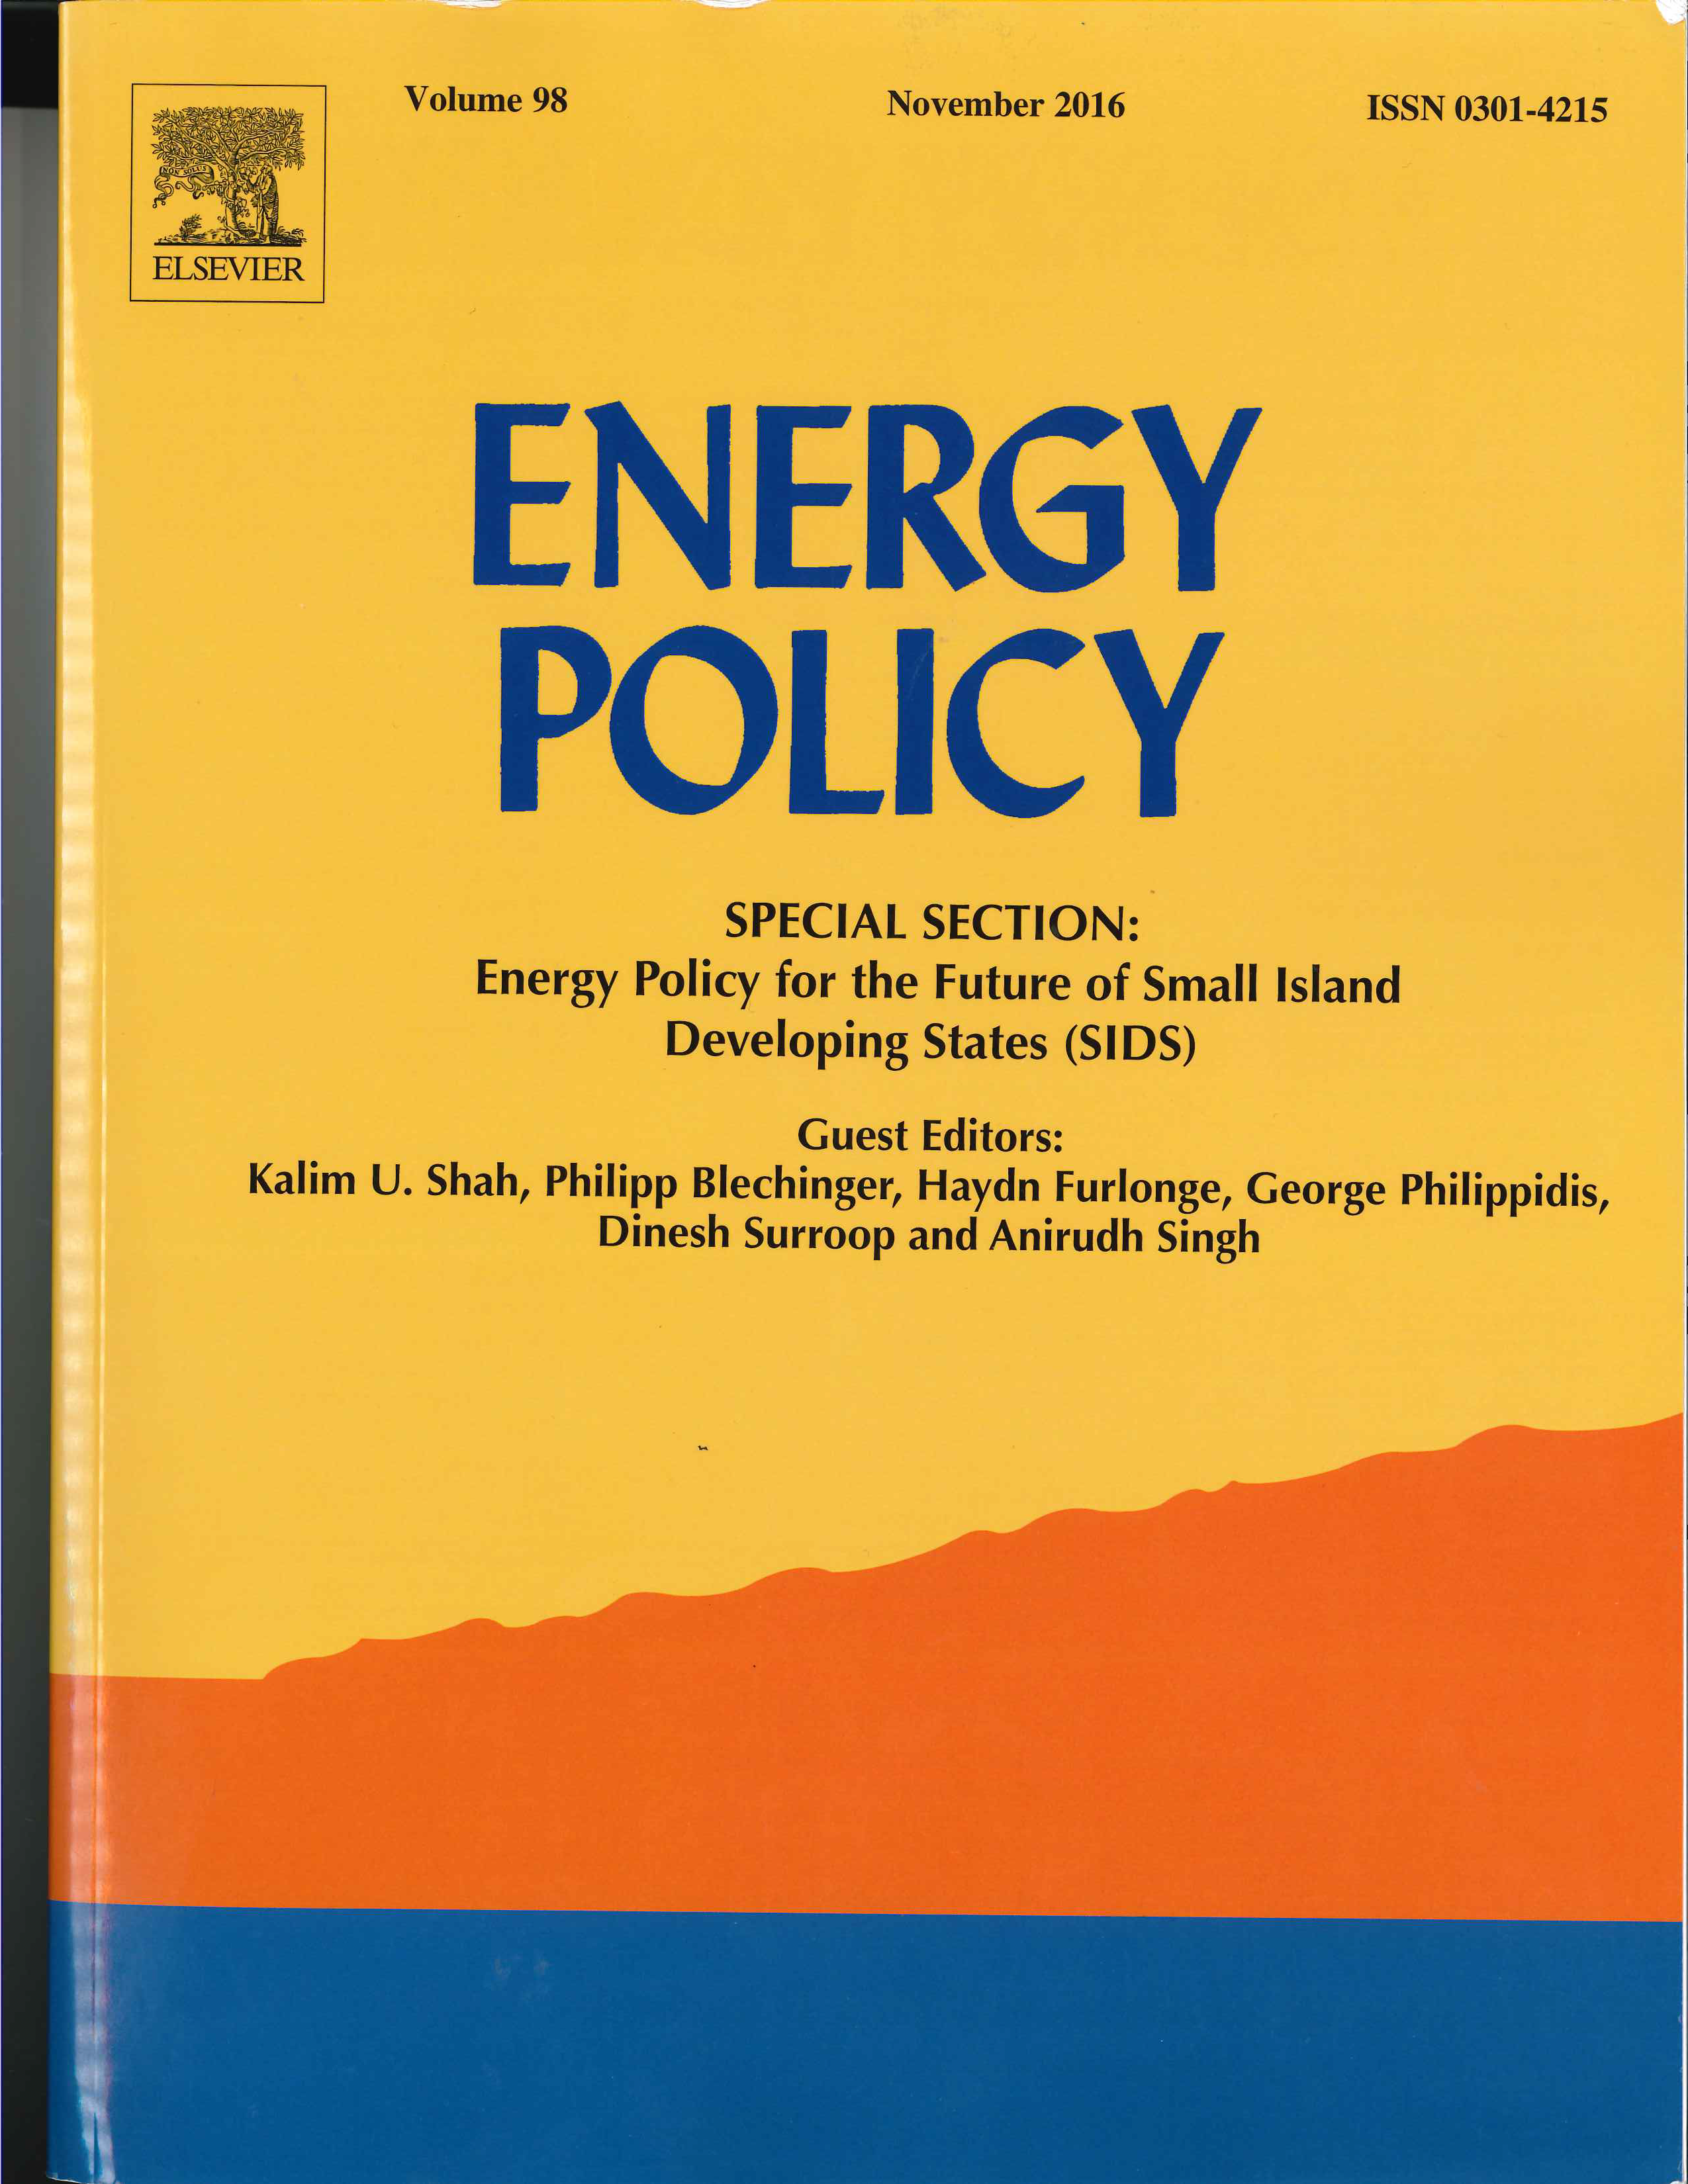 Energy Policy Journal